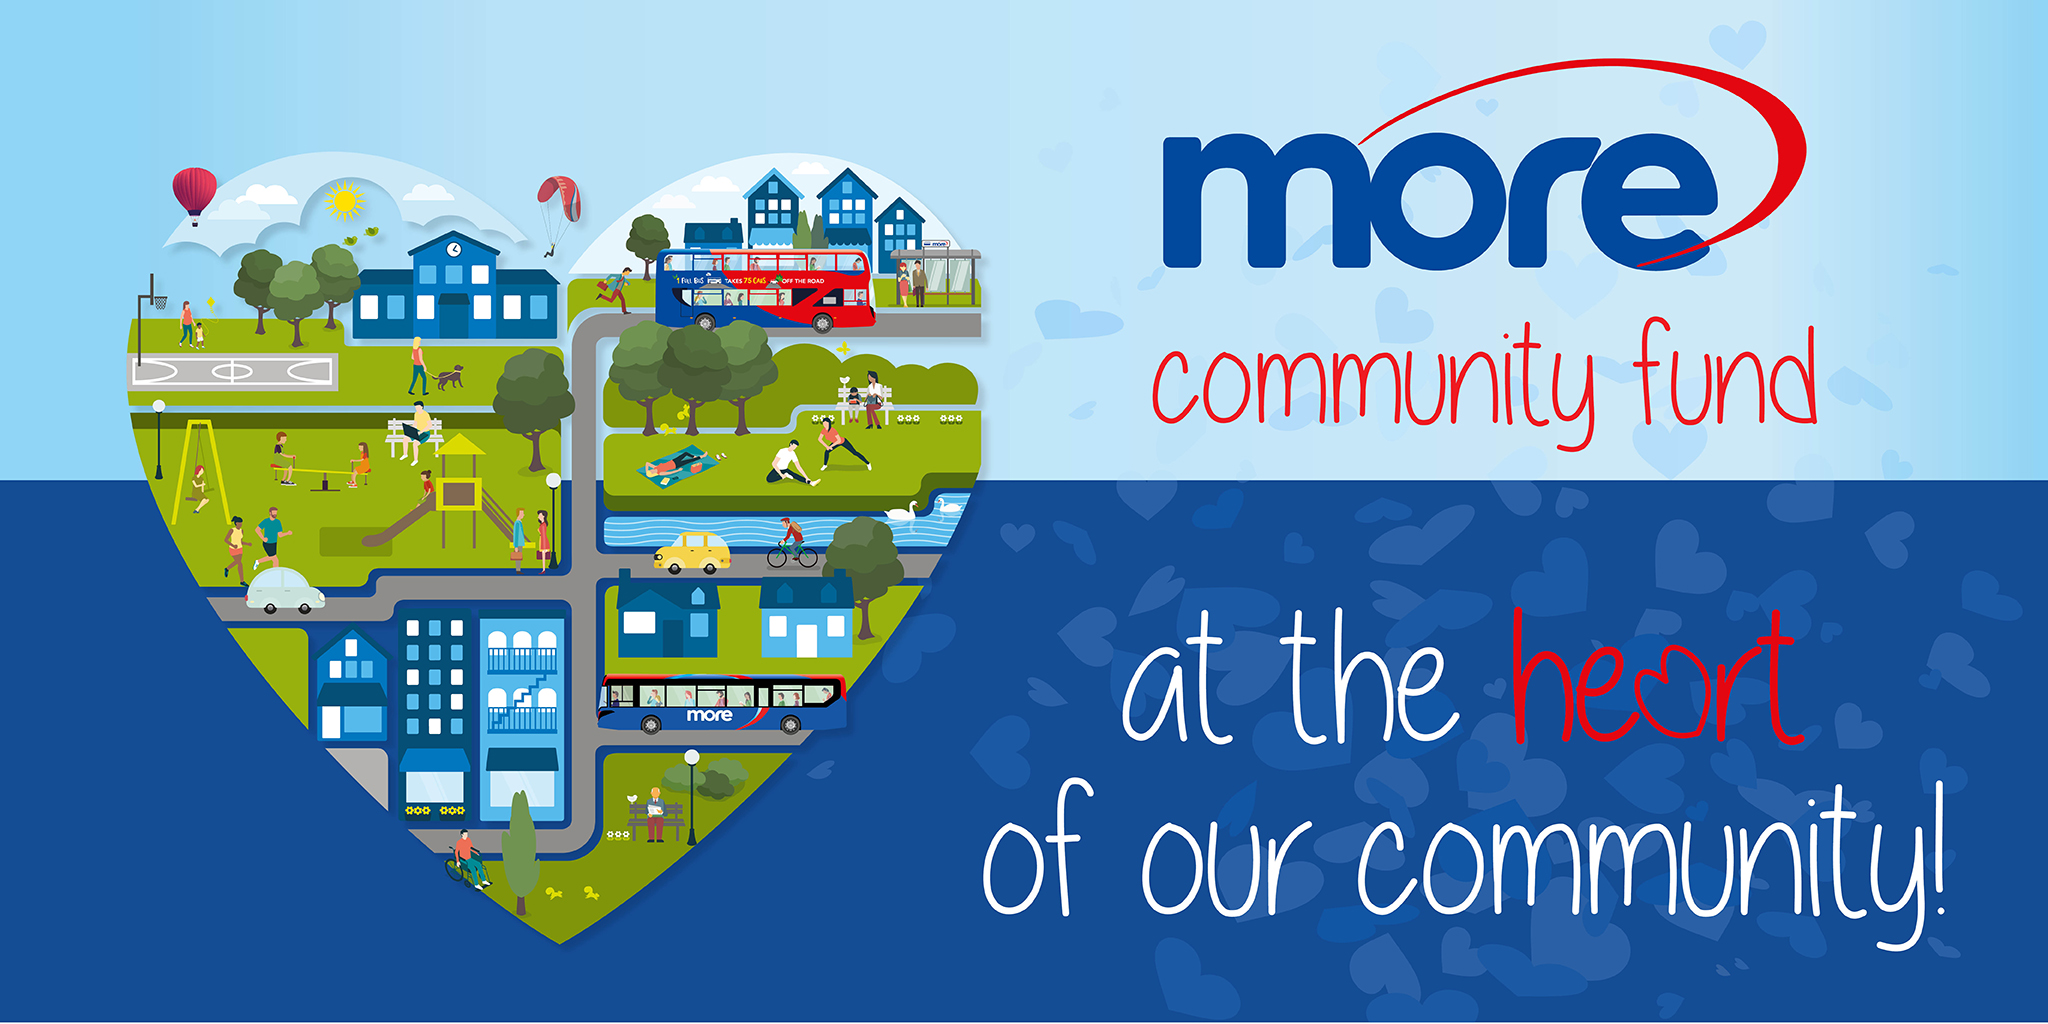 morebus community fund image with text 'at the heart of our community!'